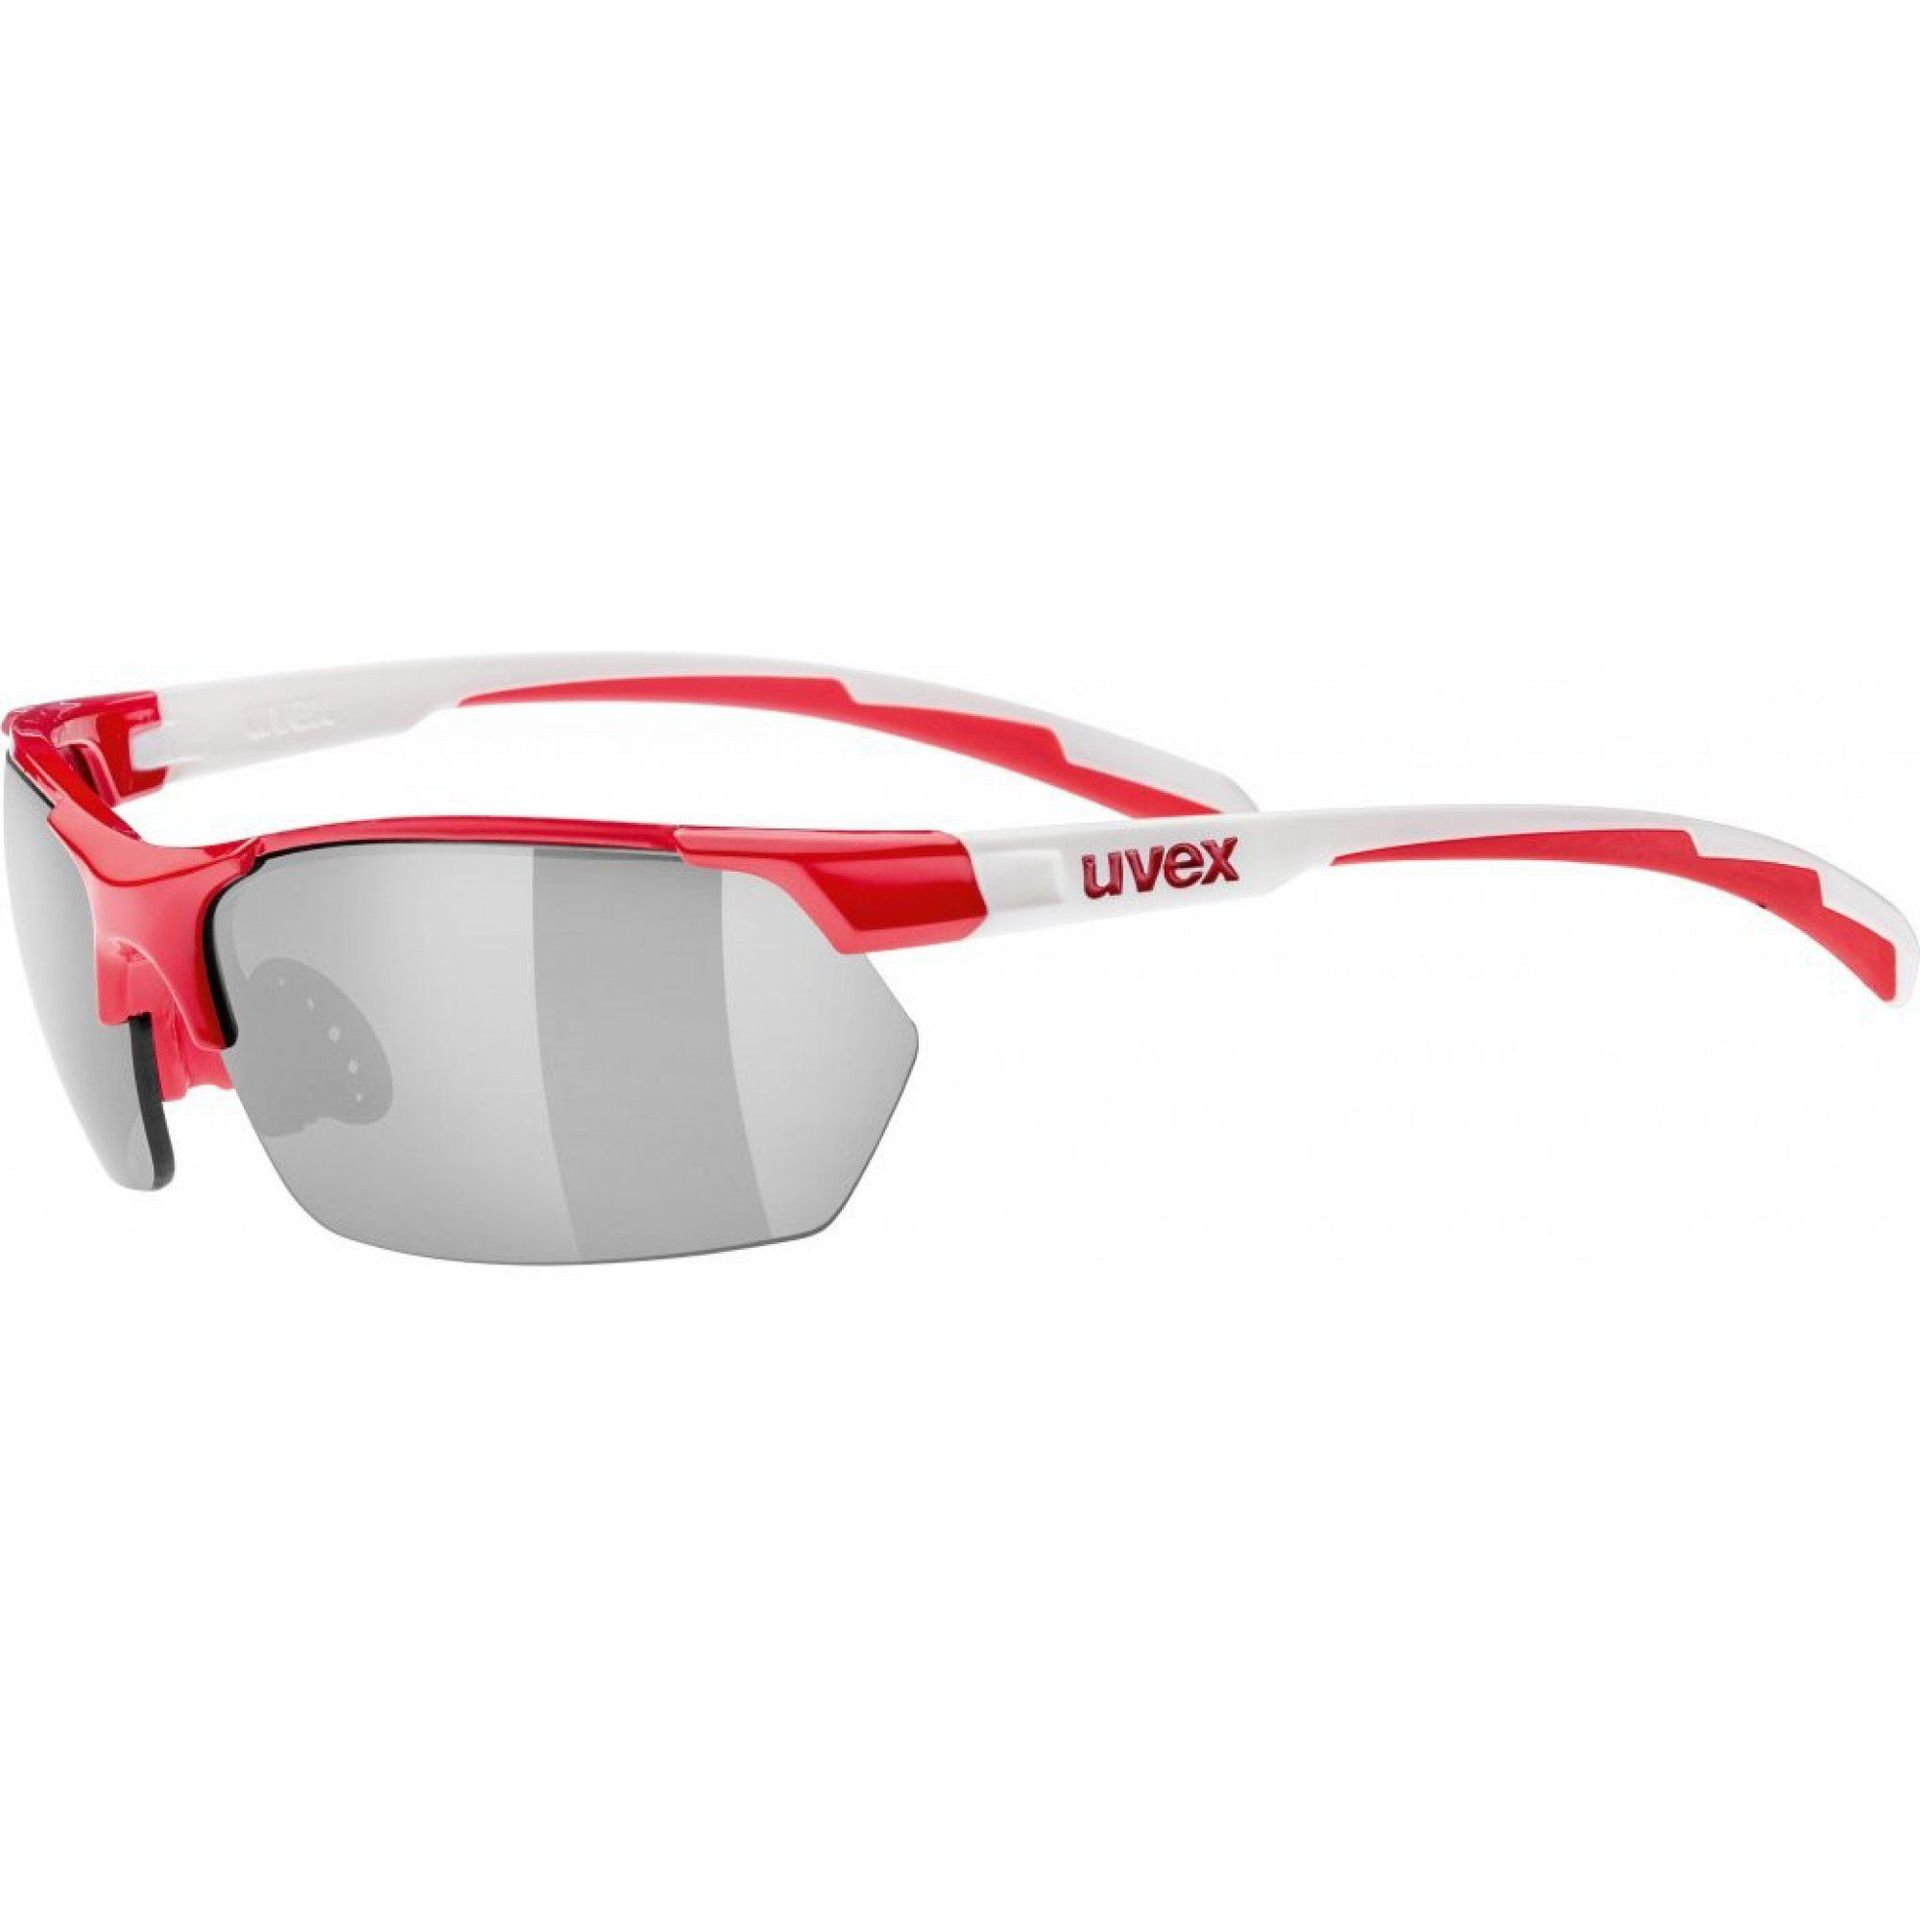 OKULARY UVEX SPORTSTYLE 114 RED WHITE